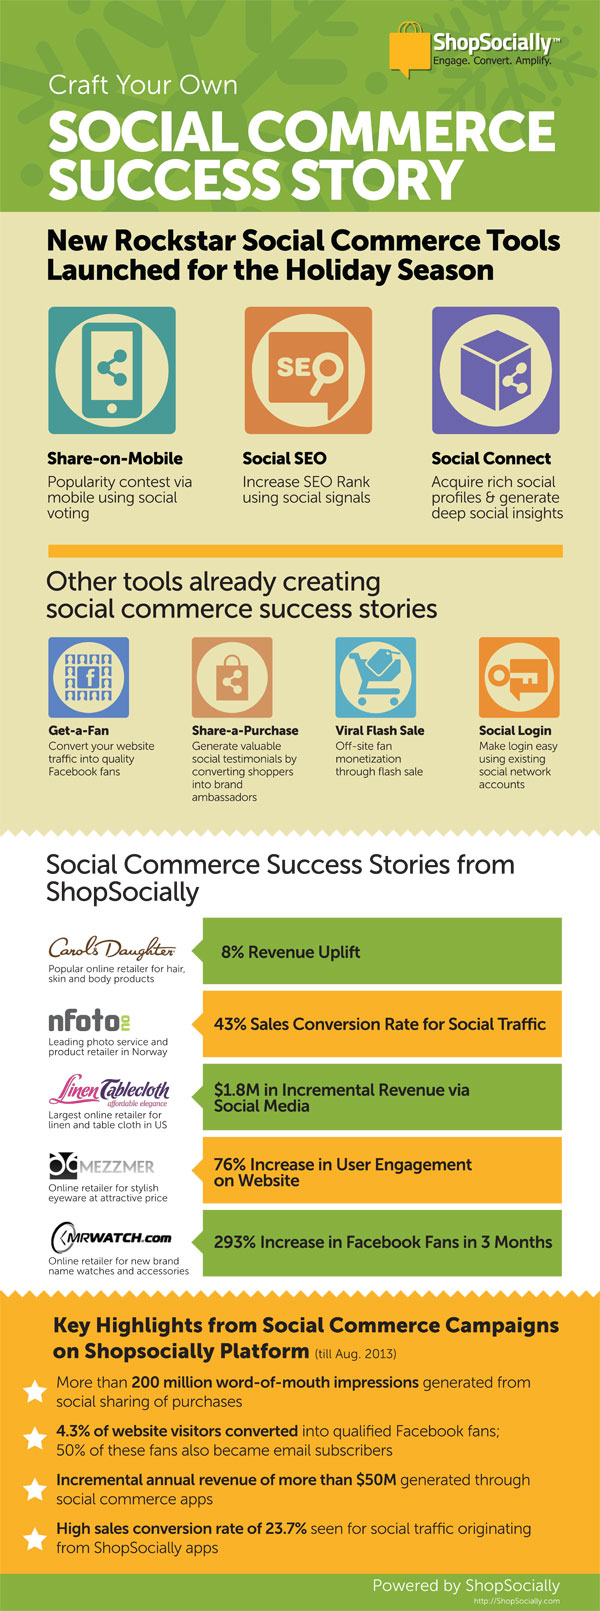 Social Commmerce Success Stories from ShopSocially